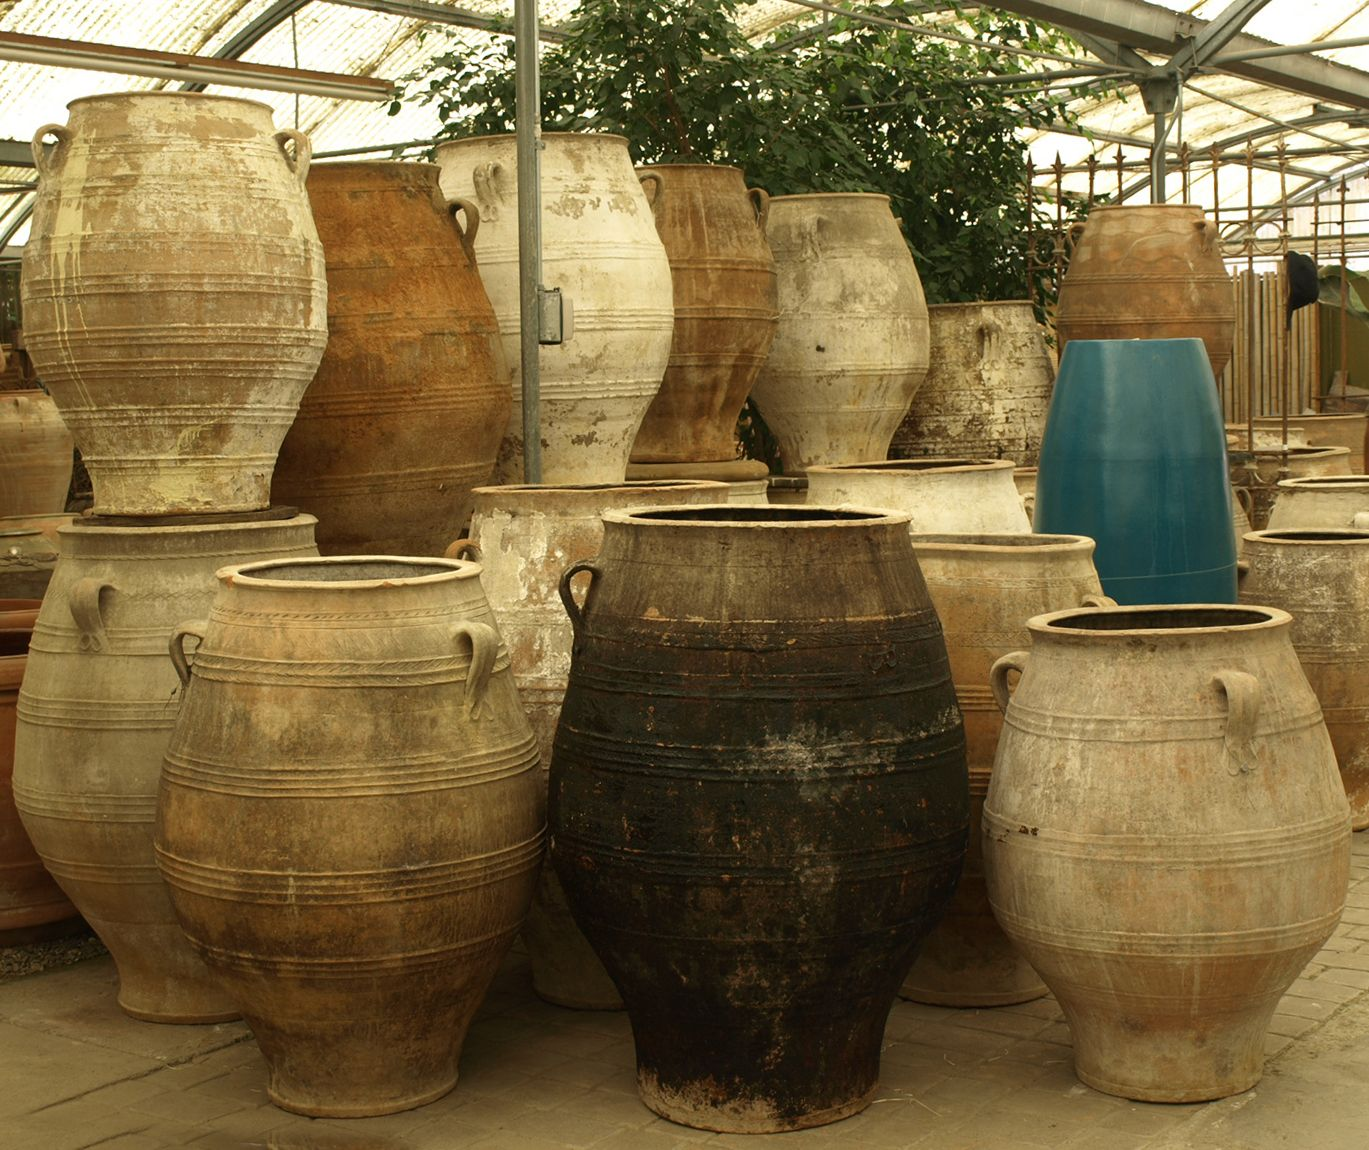 Antique Greek oil jars http://www.eyeofthedaygdc.com/#/products ...